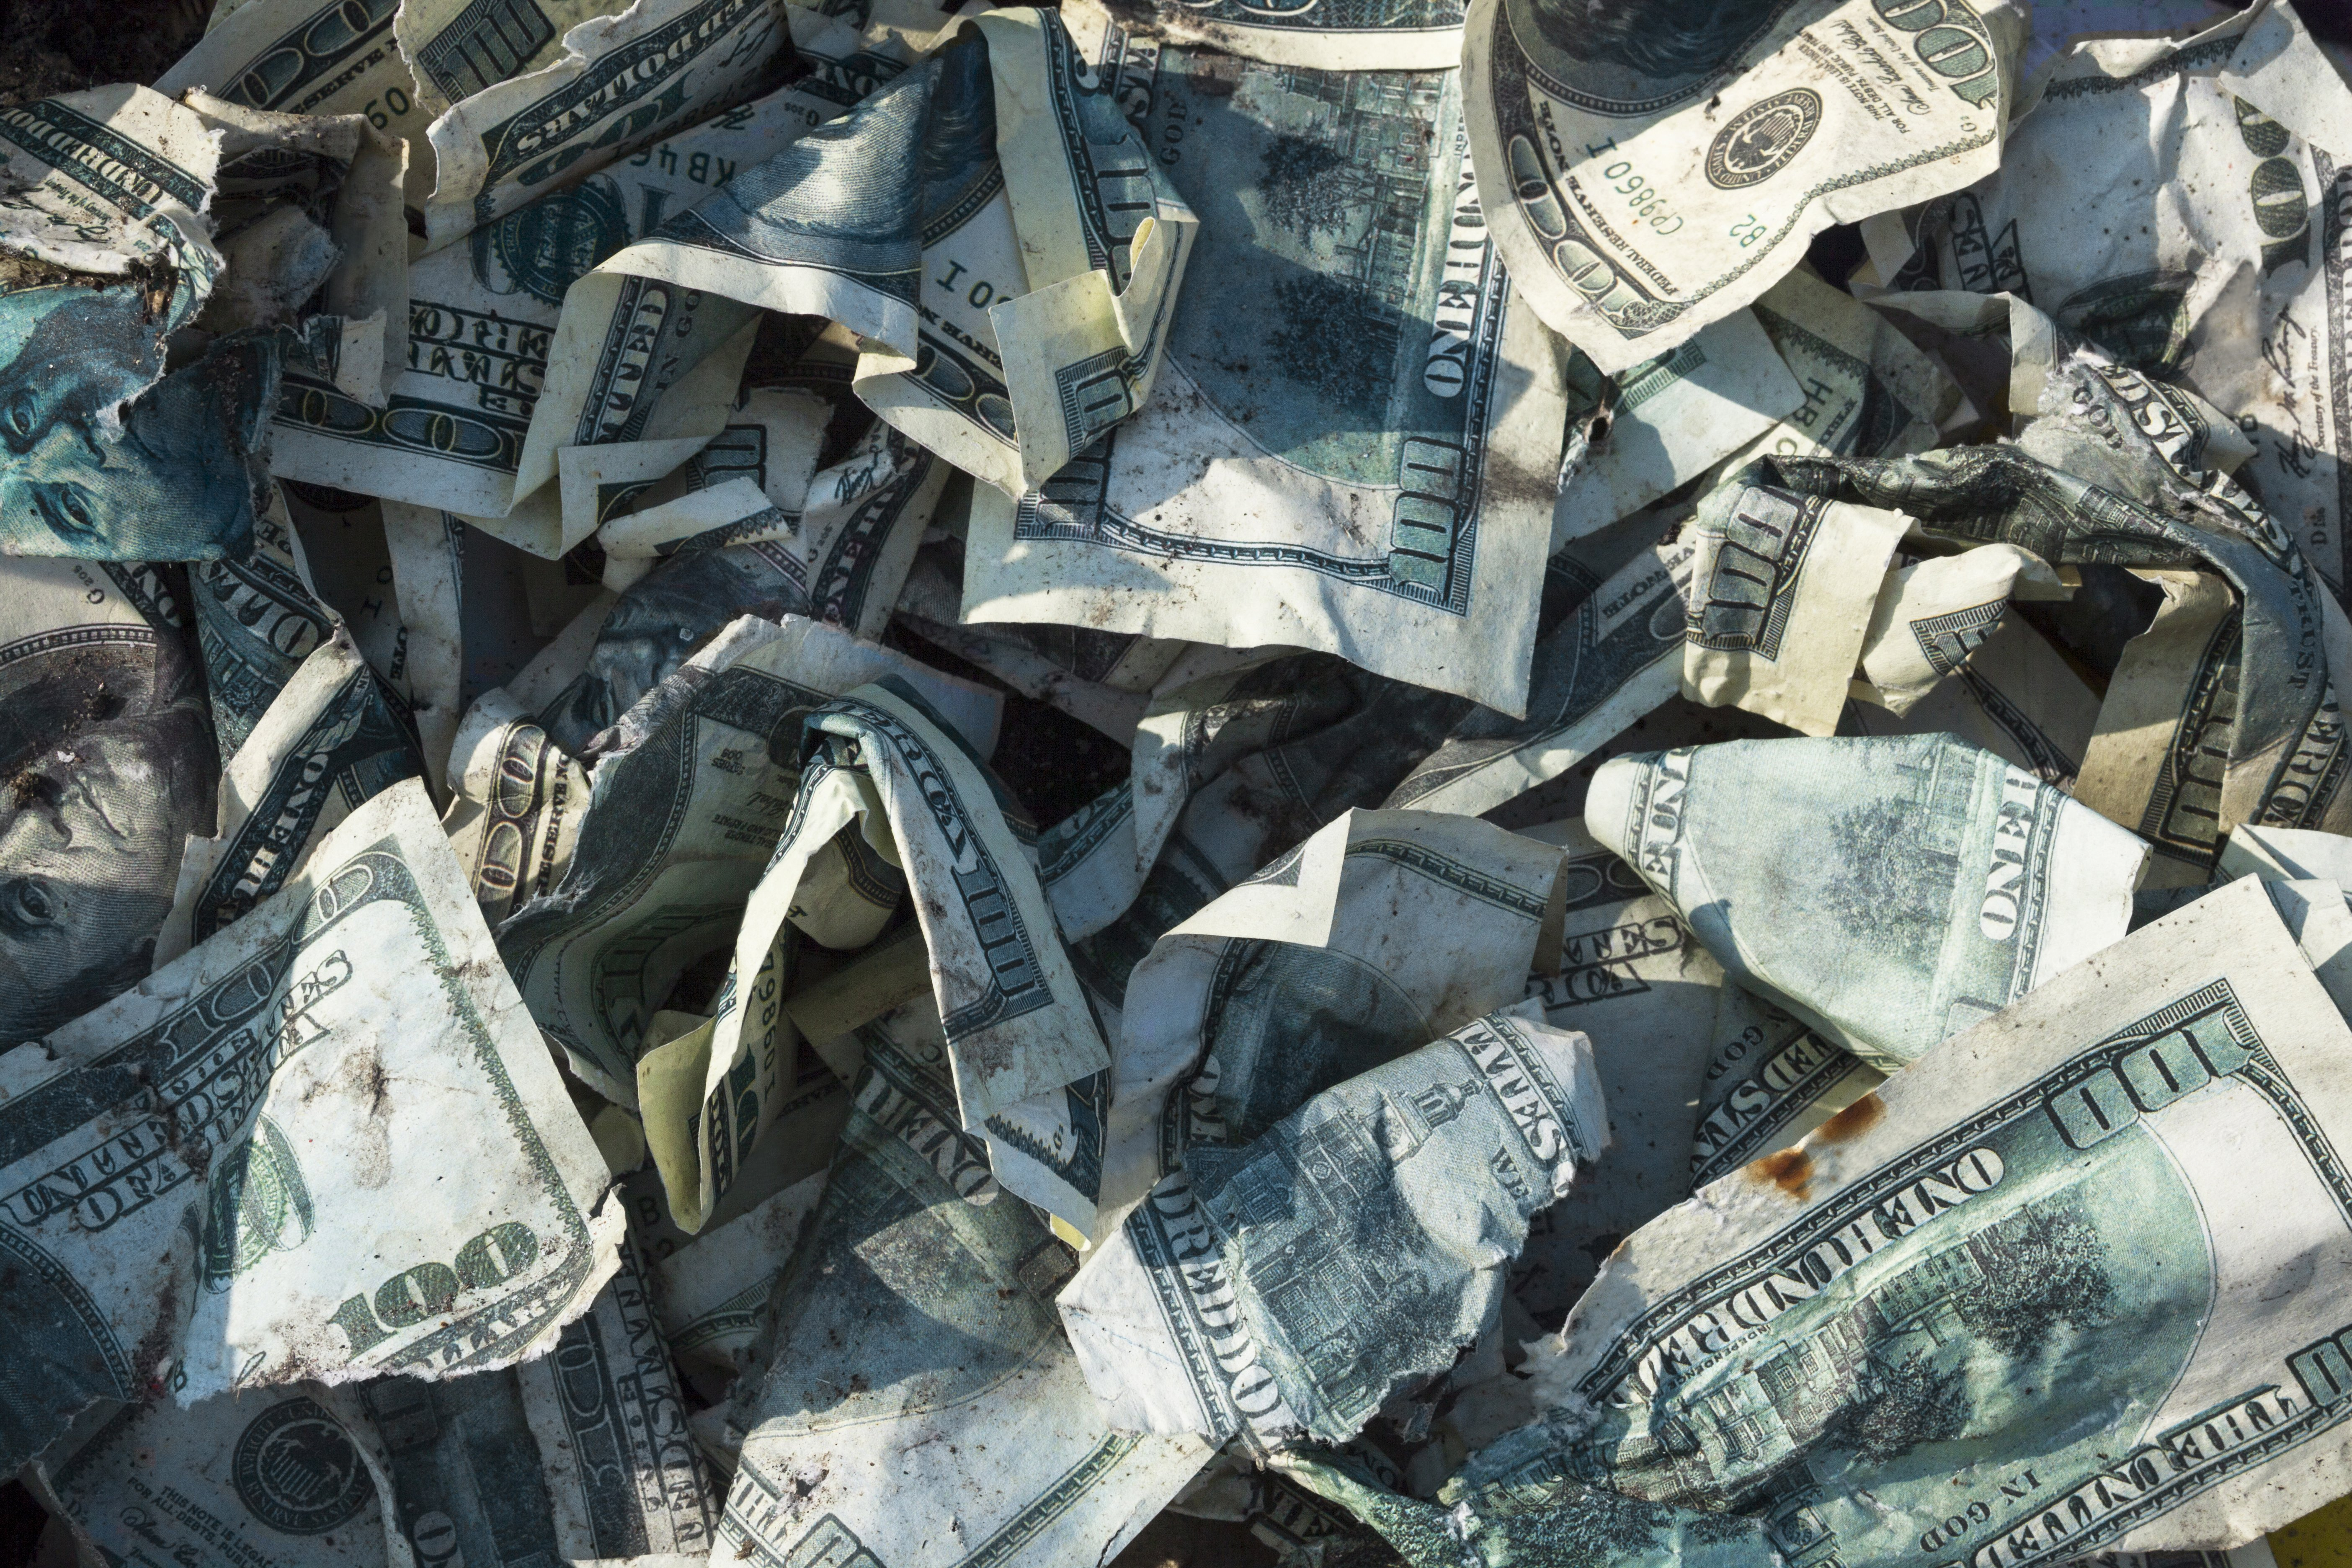 Bunch of crumpled up bills | Photo: Shutterstock